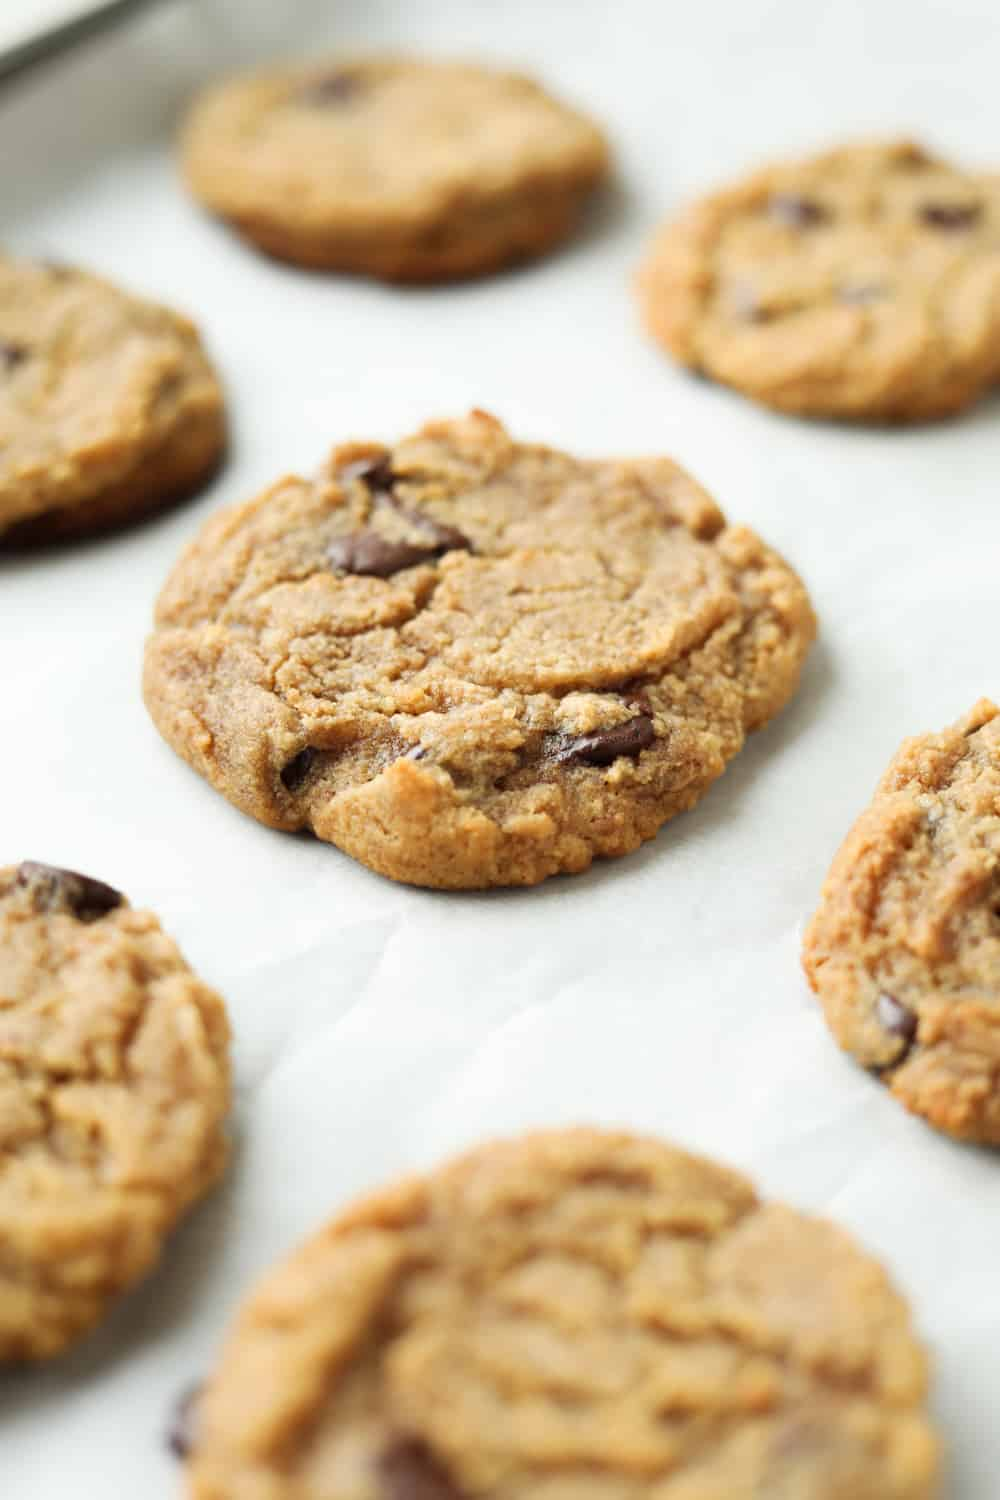 Chocolate chip cookie on a baking sheet lined with parchment paper.